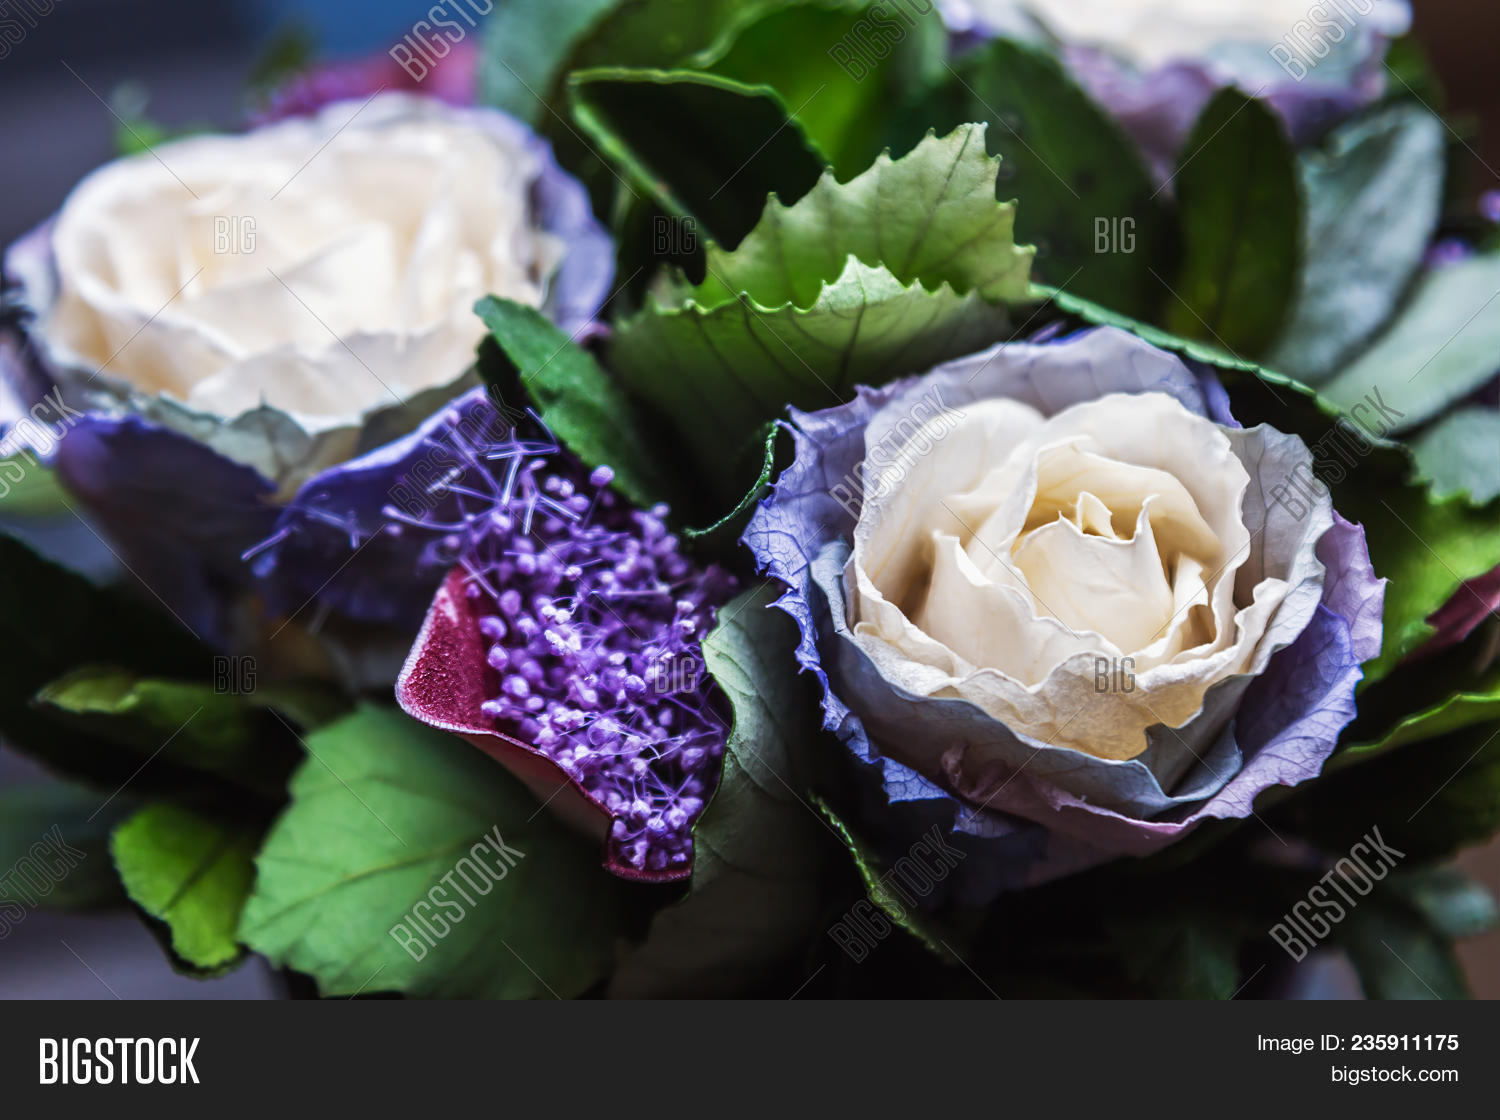 Stabilized Rose Image Photo Free Trial Bigstock